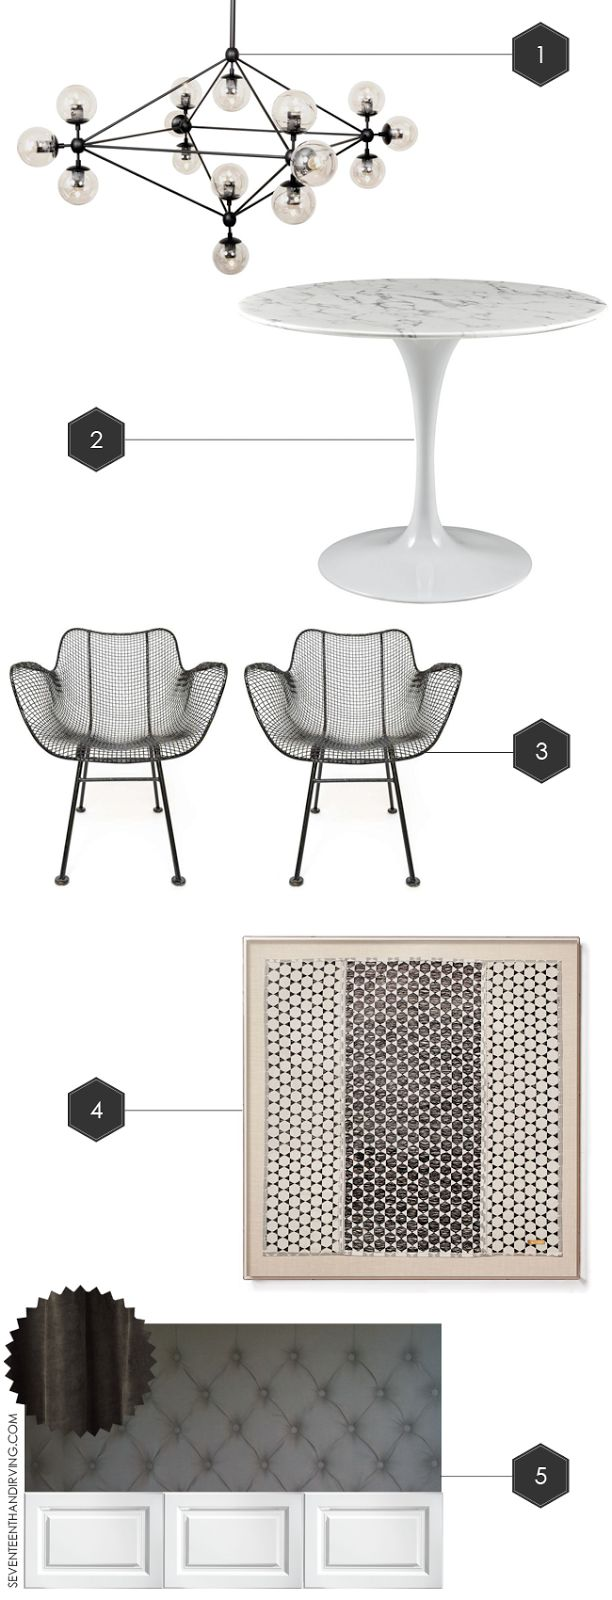 172 best Home Goods images on Pinterest | Bathrooms, Master ...